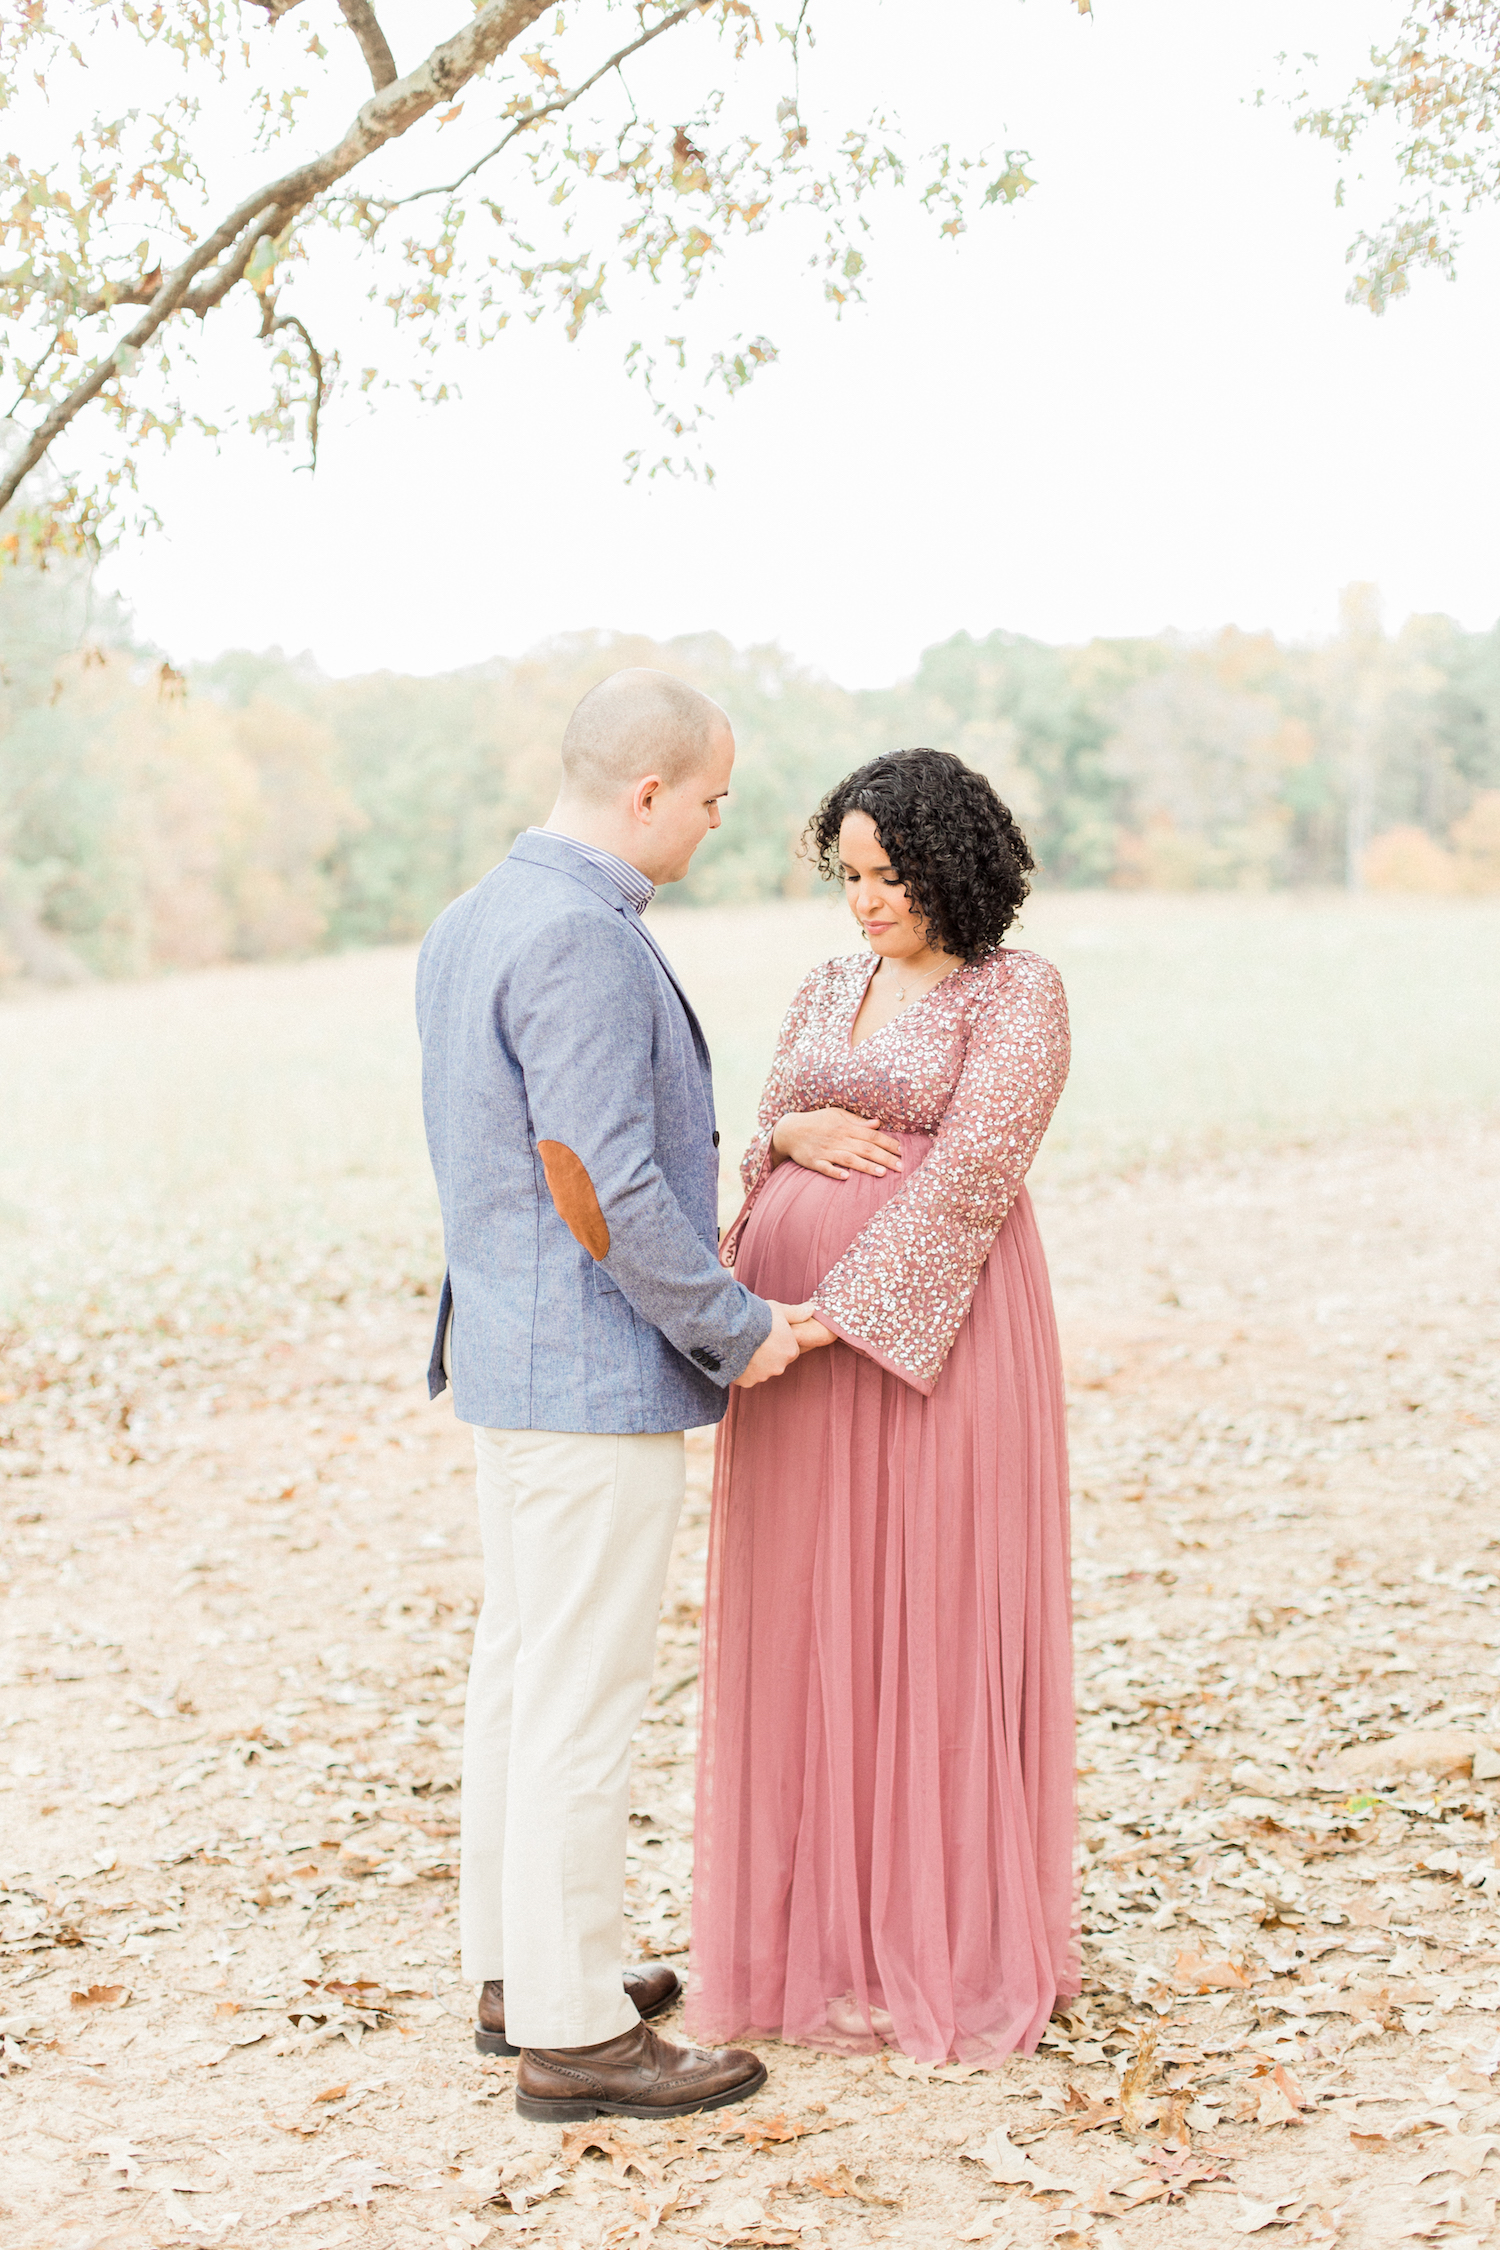 Maternity session style. Blue sports coat with elbow patch. Sparkly tulle mauve maternity dress from ASOS. Atlanta Fine Art Maternity Photographer.